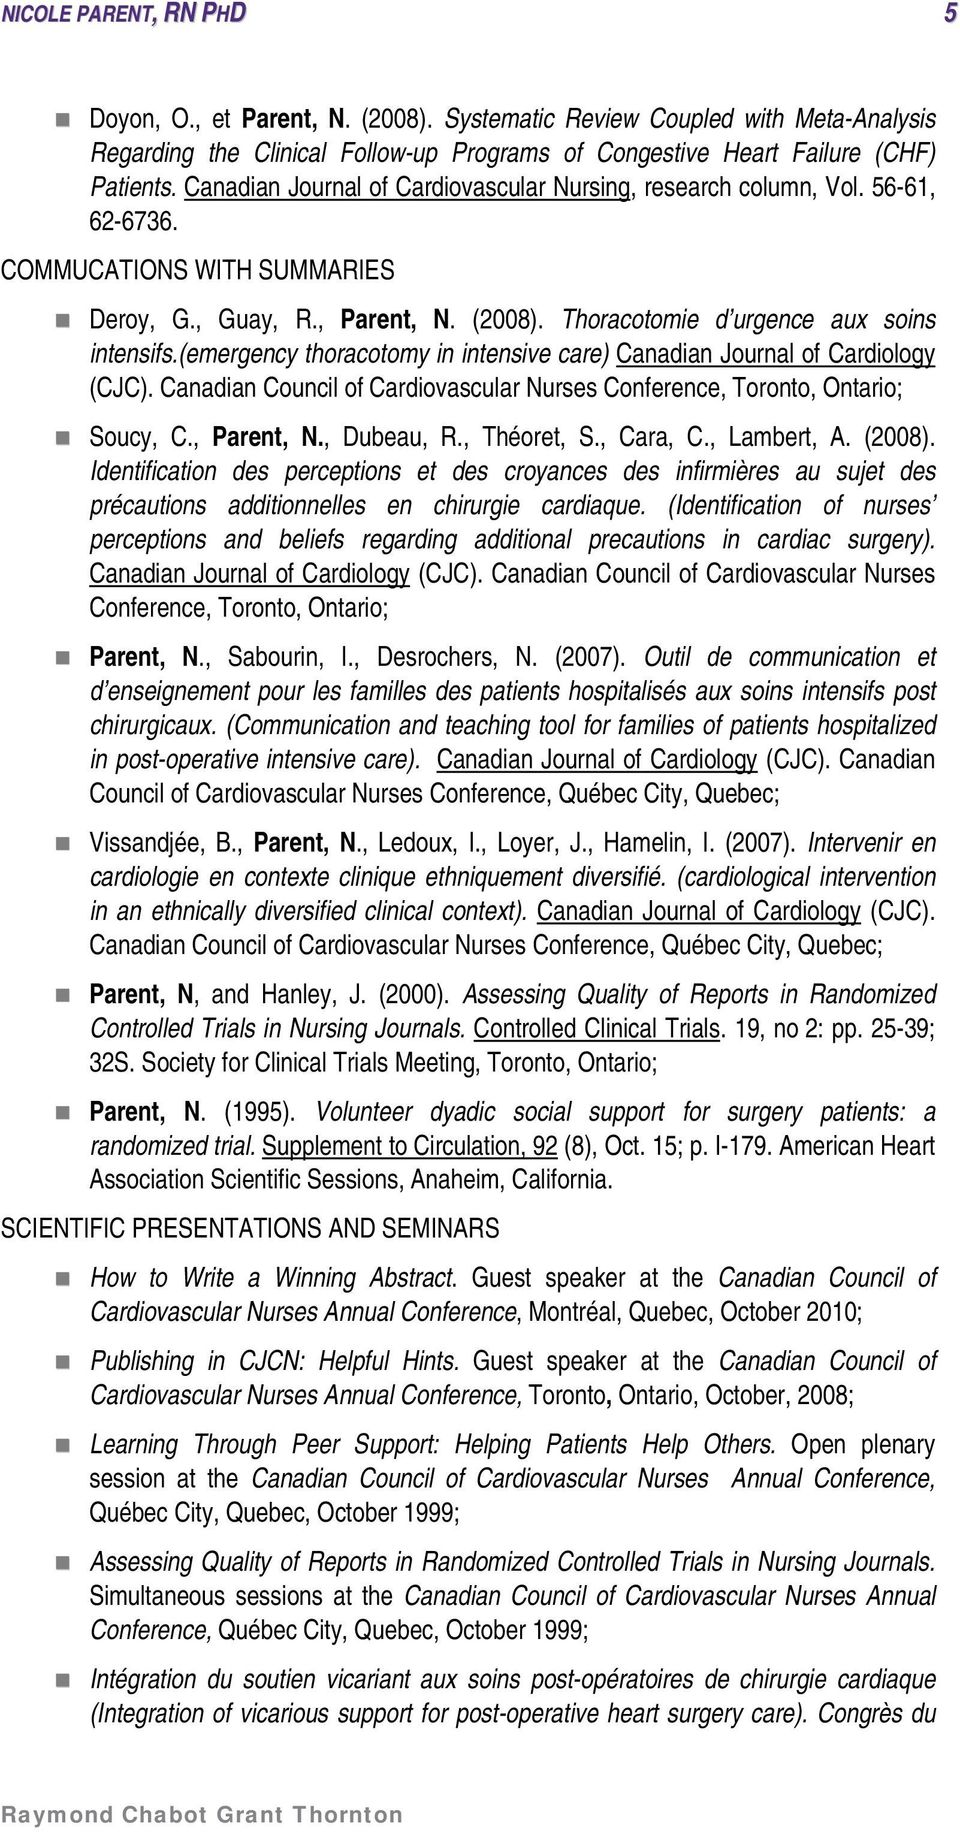 (emergency thoracotomy in intensive care) Canadian Journal of Cardiology (CJC). Canadian Council of Cardiovascular Nurses Conference, Toronto, Ontario; Soucy, C., Parent, N., Dubeau, R., Théoret, S.